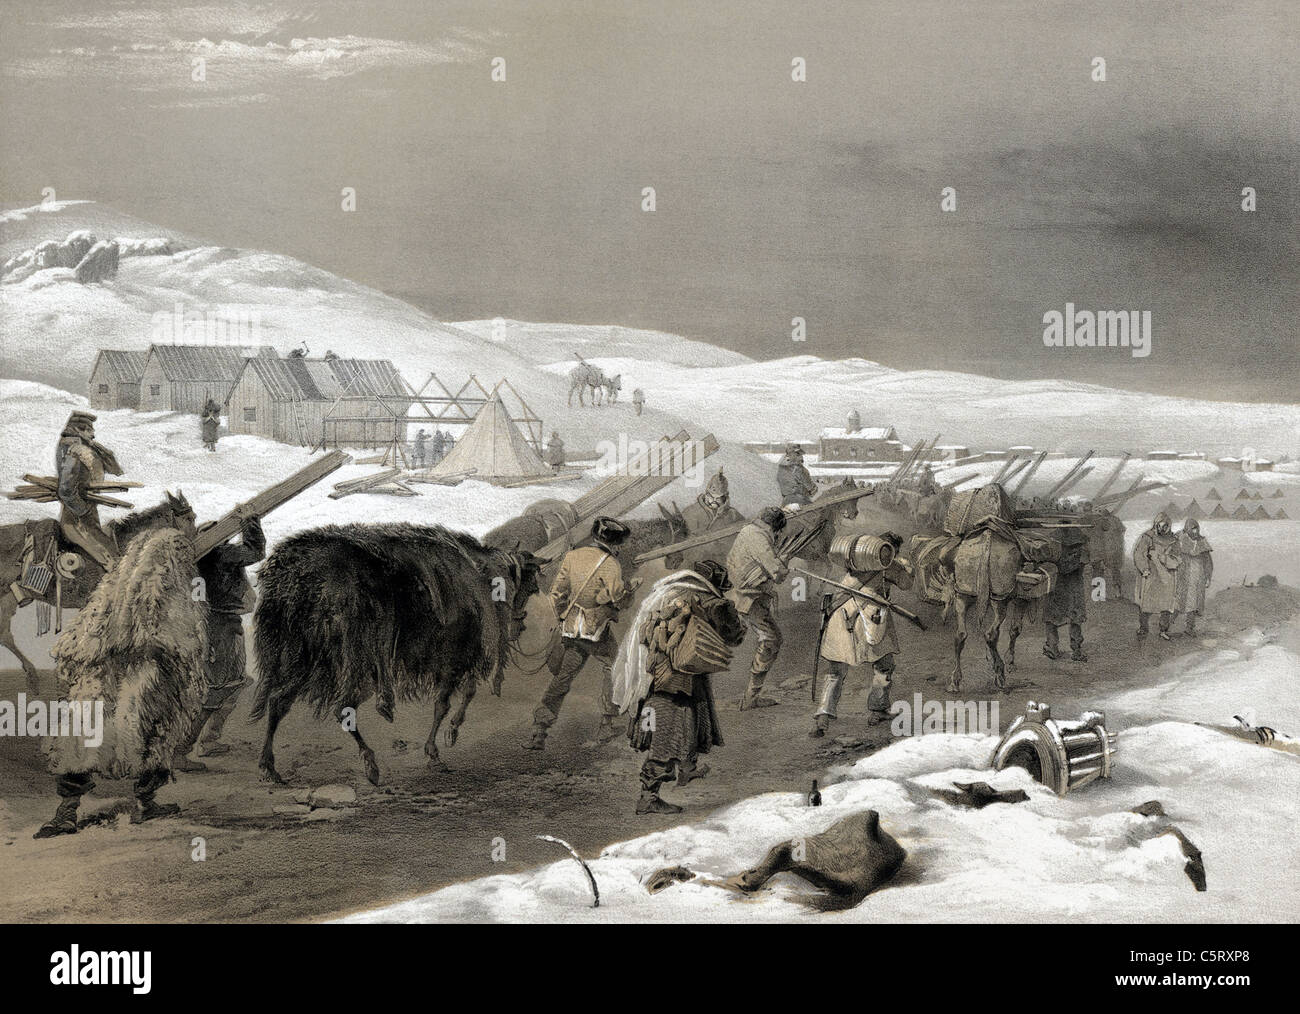 CRIMEAN WAR Lithograph by  William Simpson entilted 'Huts and warm clothing' shows supply train for British - Stock Image